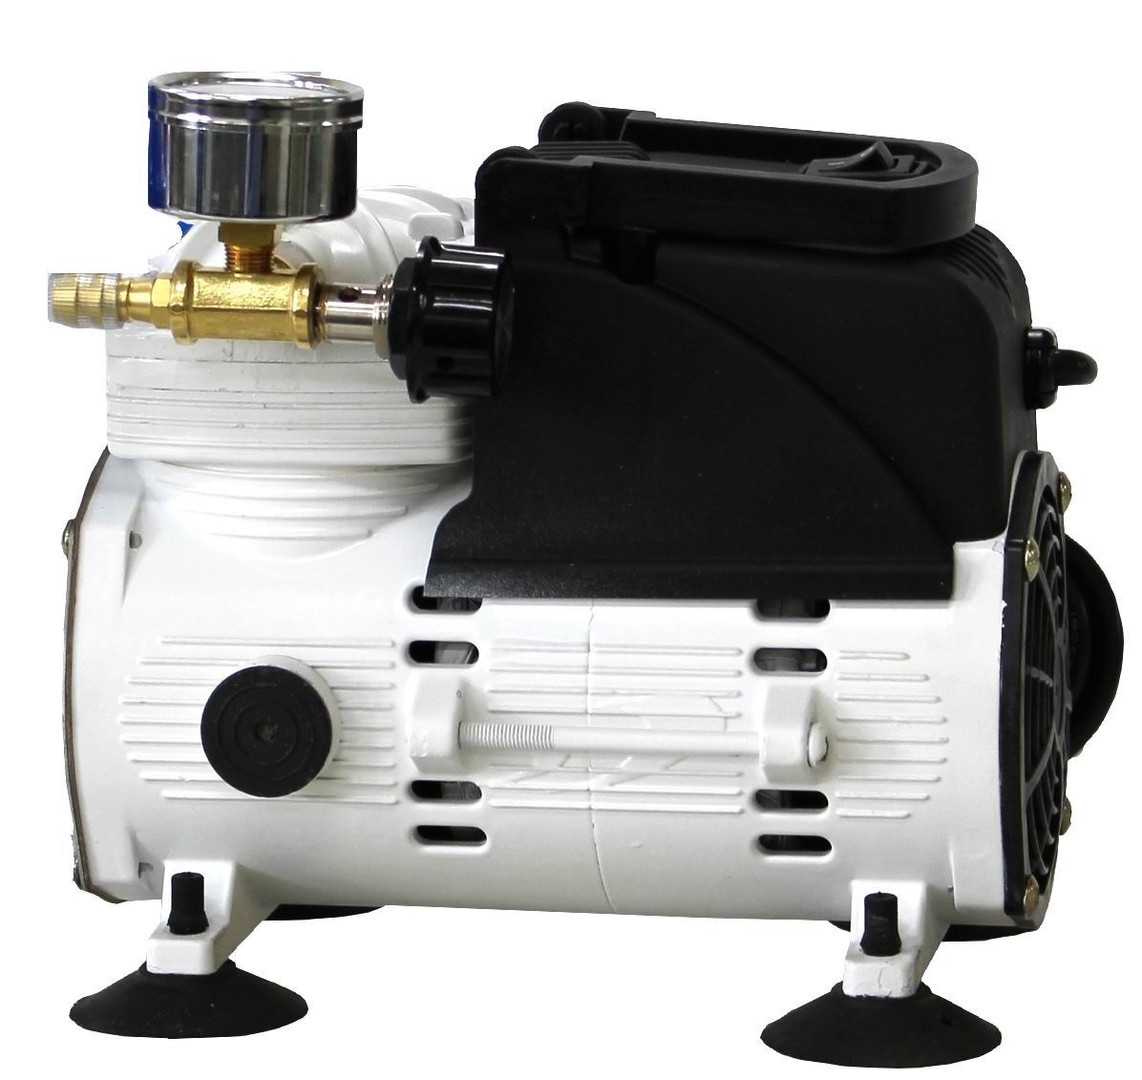 VS01 Vacuum Pump